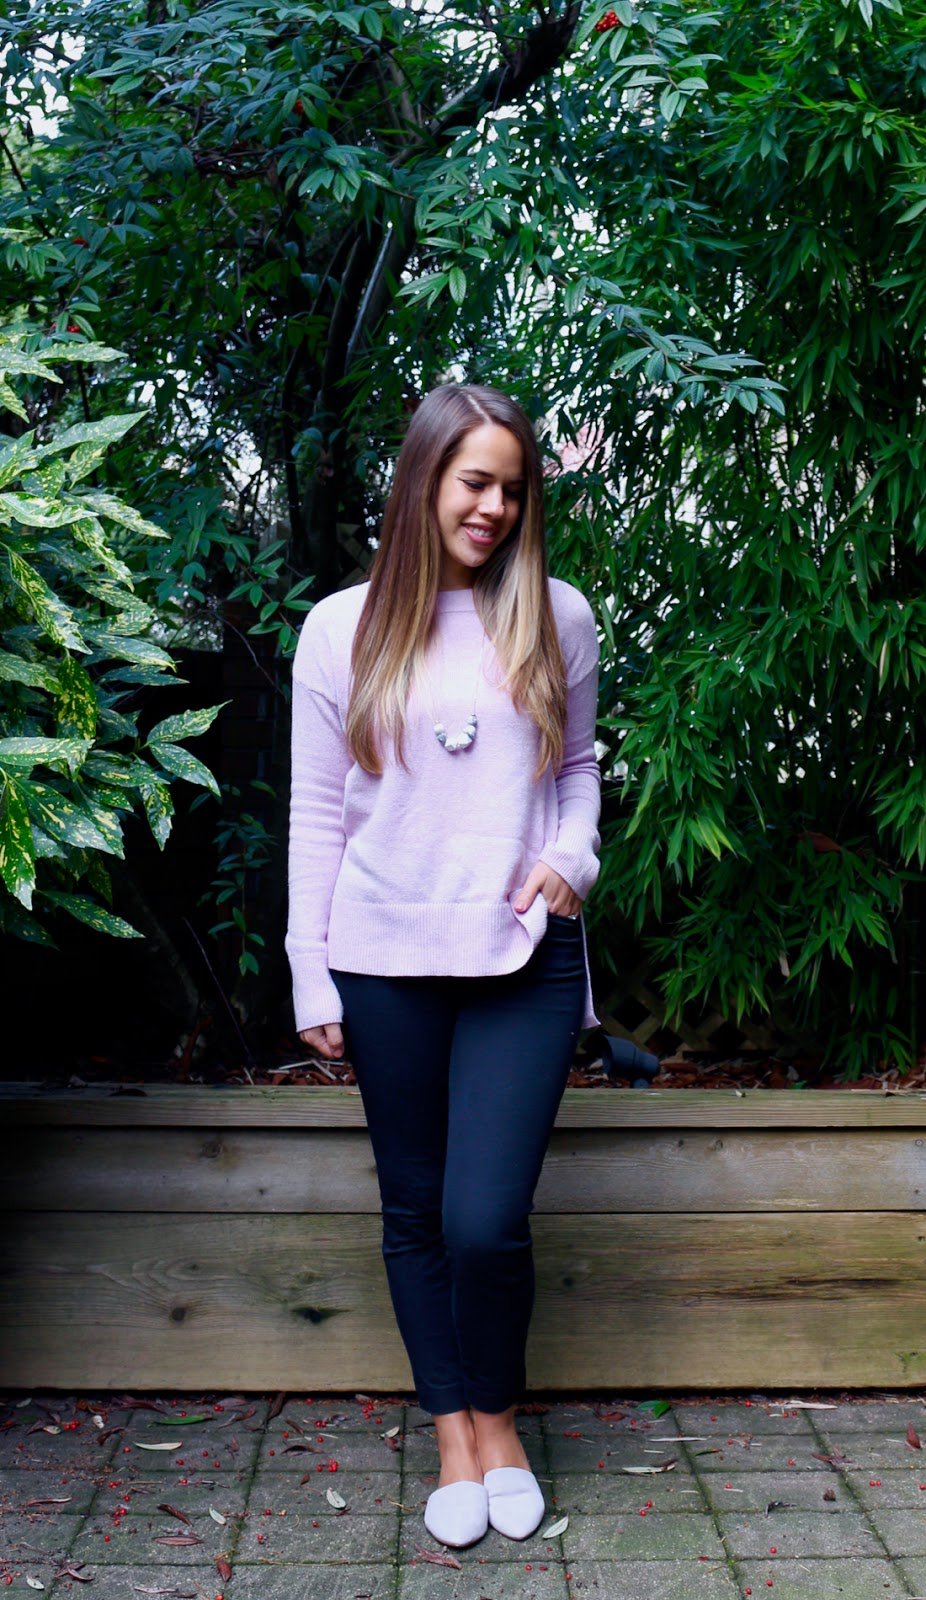 Jules in Flats - Lavender Crew Neck Sweater with Grey Suede Mules (Business Casual Winter Workwear on a Budget)